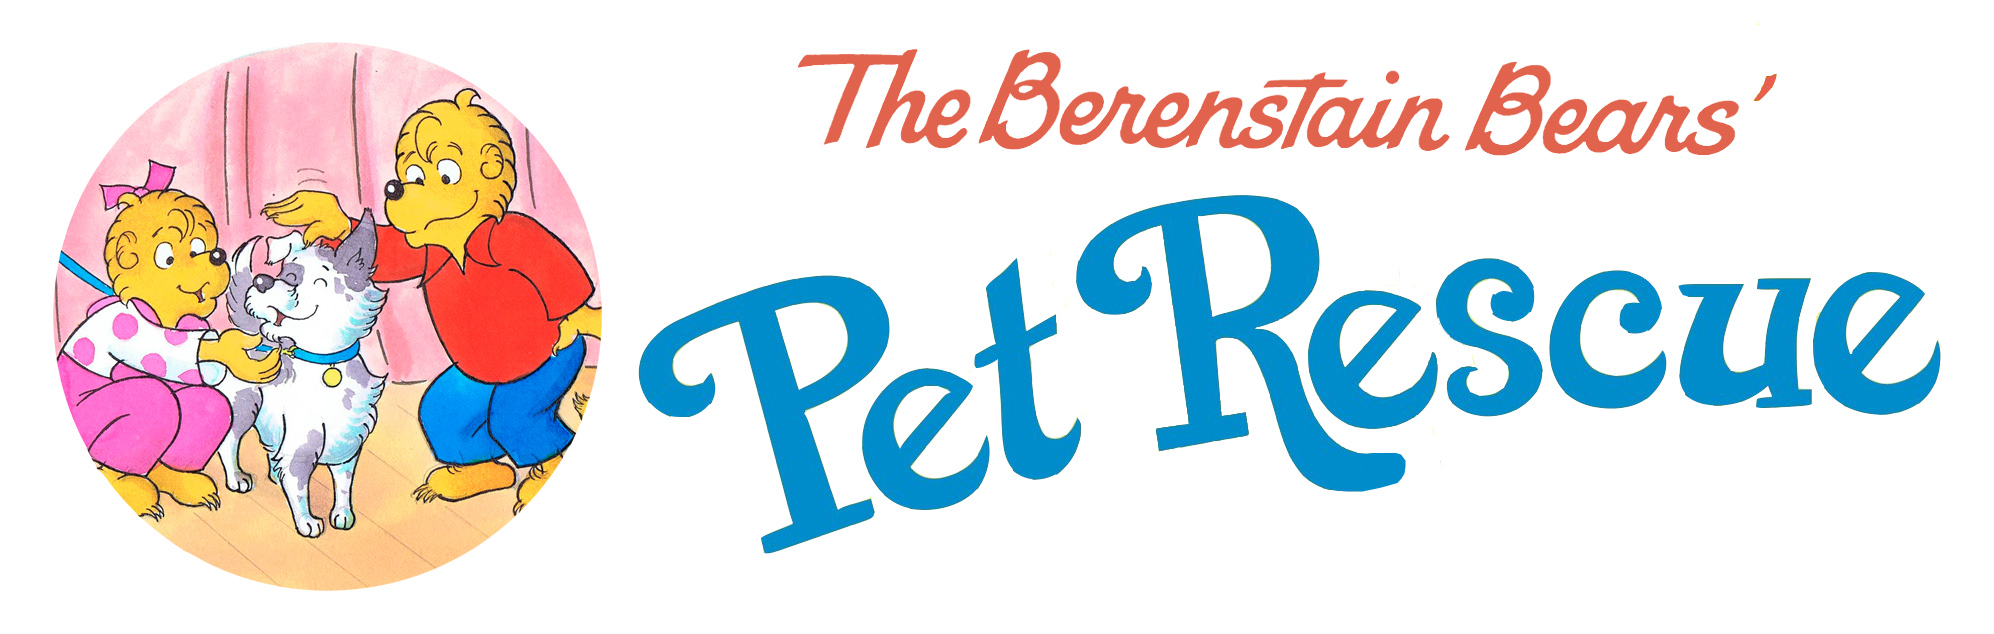 The Berenstain Bears Pet Rescue